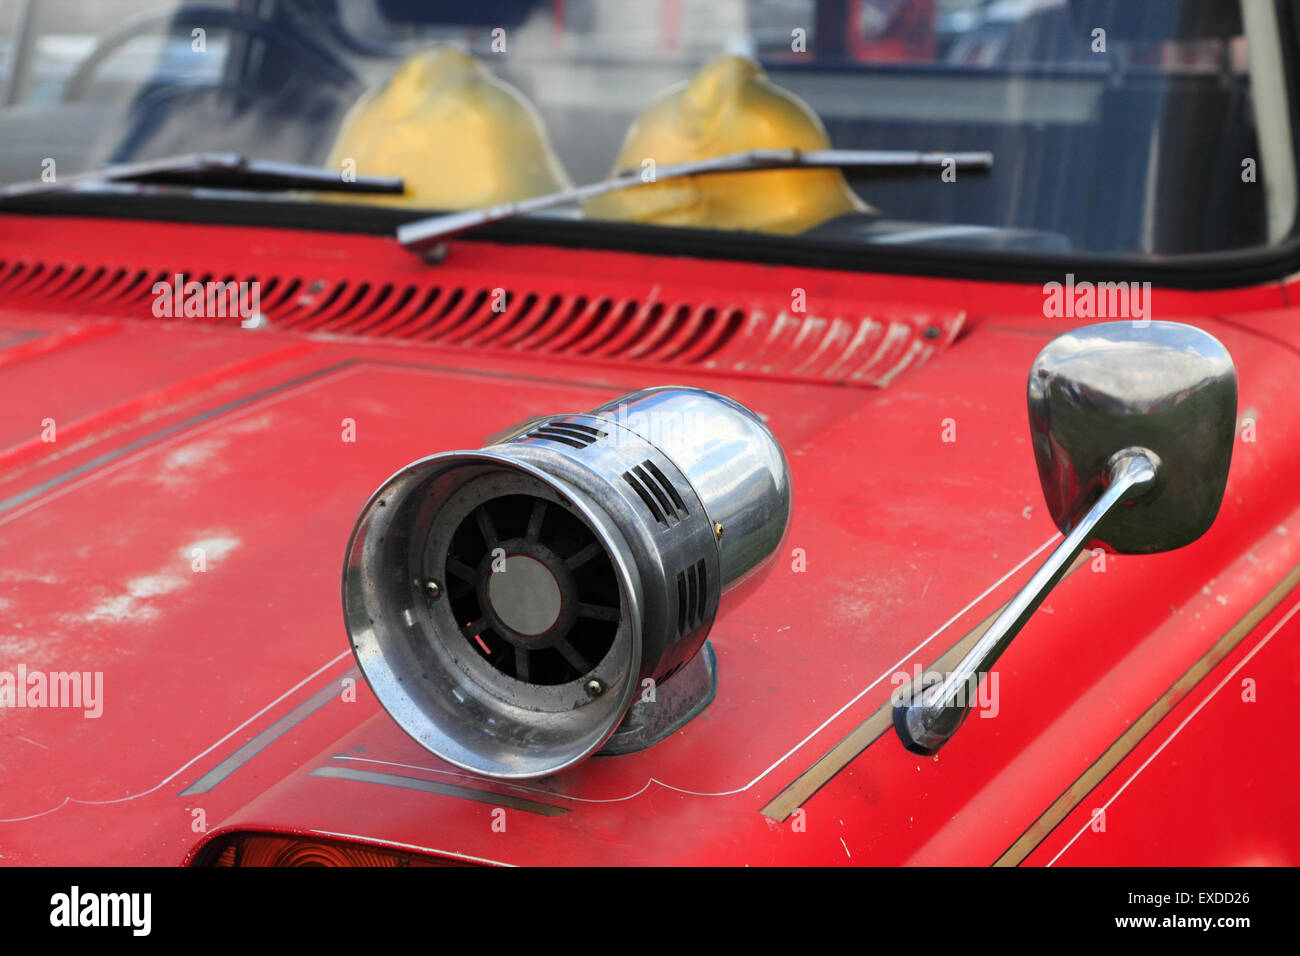 Closeup of old fire truck with a siren on the fender. Stock Photo